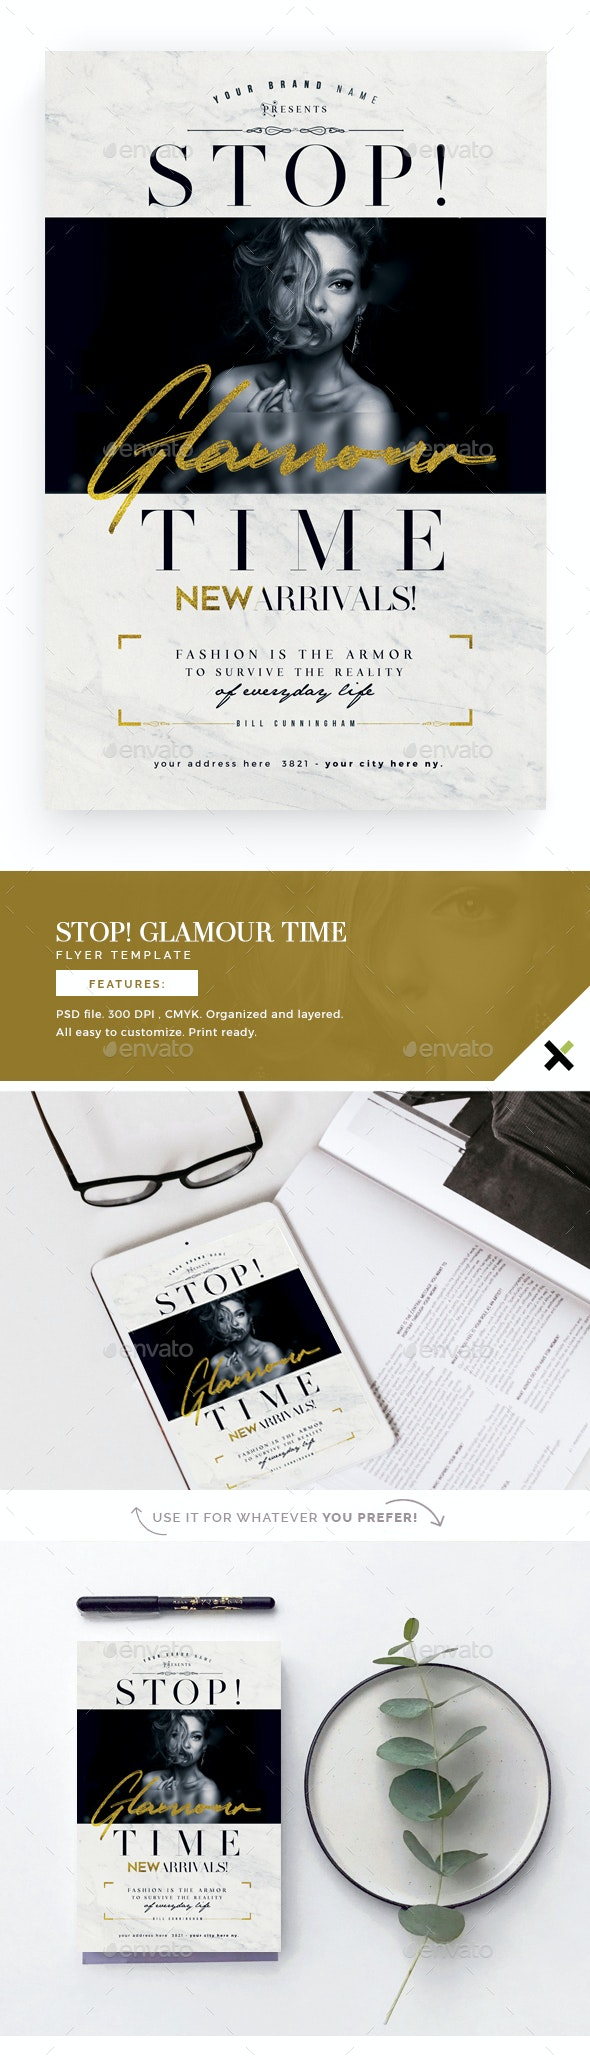 Stop! Glamour Time Flyer Template - Flyers Print Templates